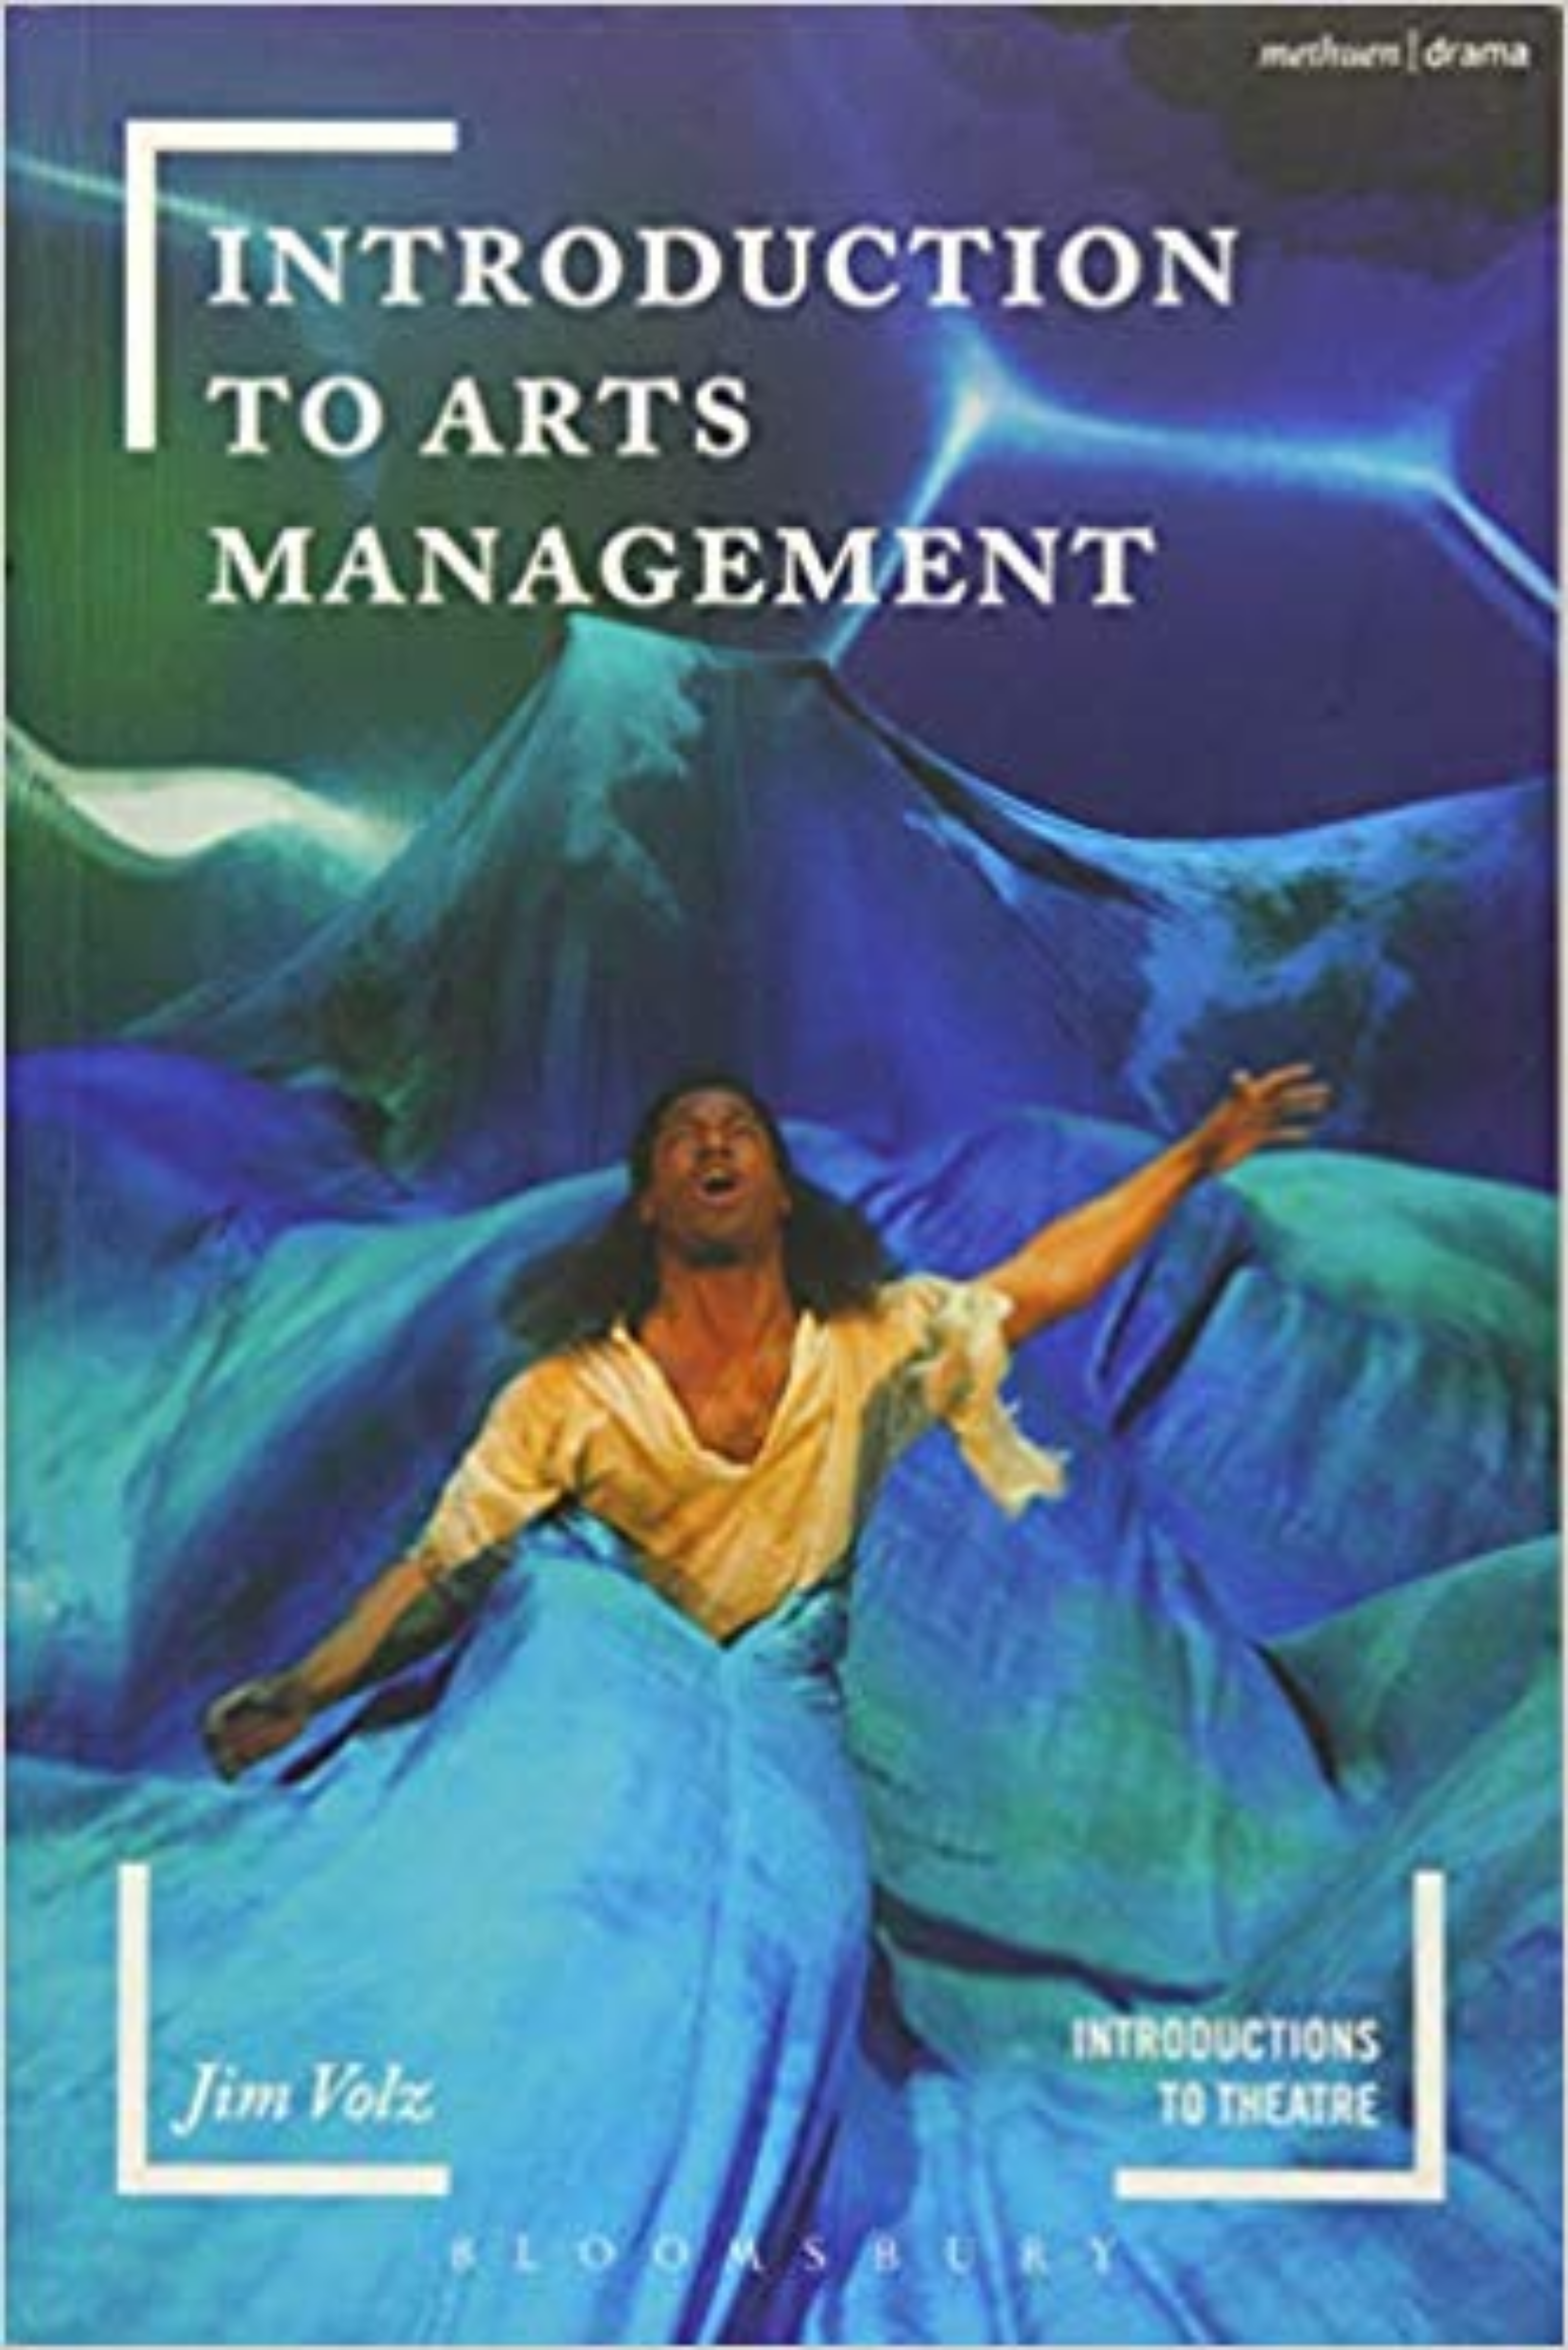 A Conversation and Book Review - Introduction to Arts Management